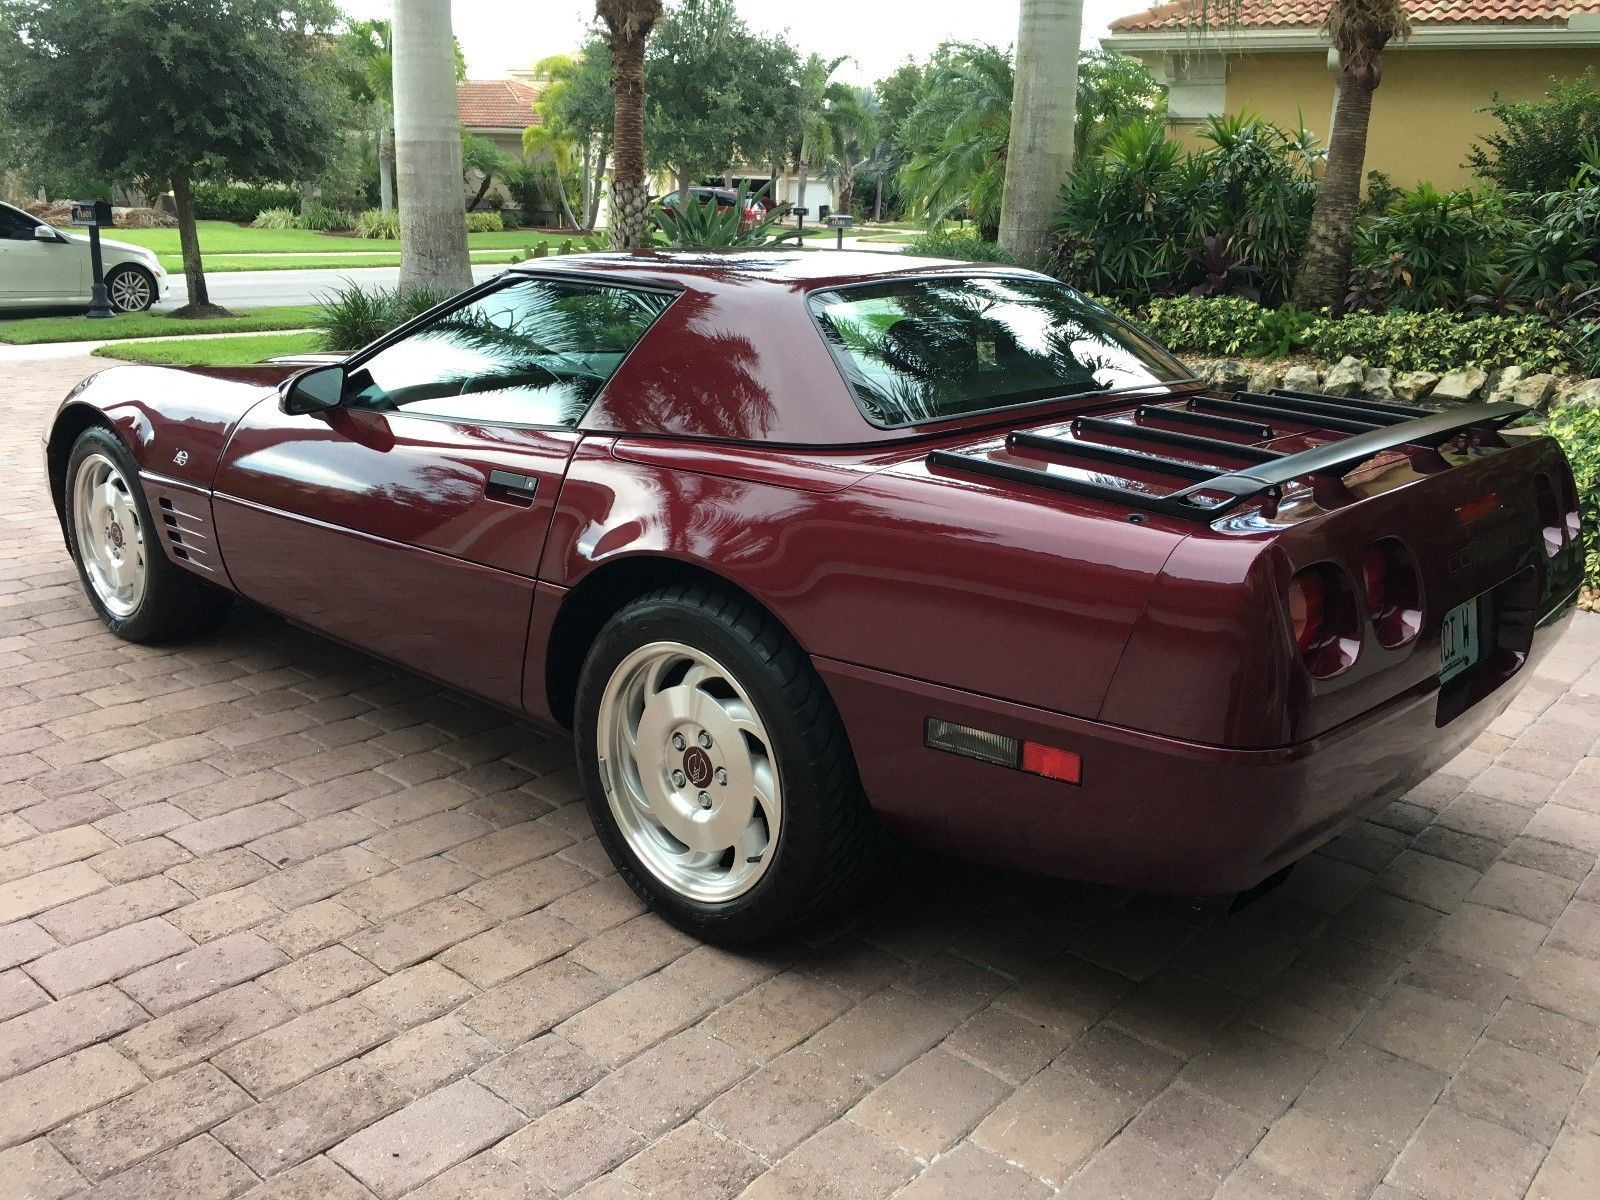 FS (For Sale) 1993 Corvette 40th Anniversary. 10,270 miles by one ...